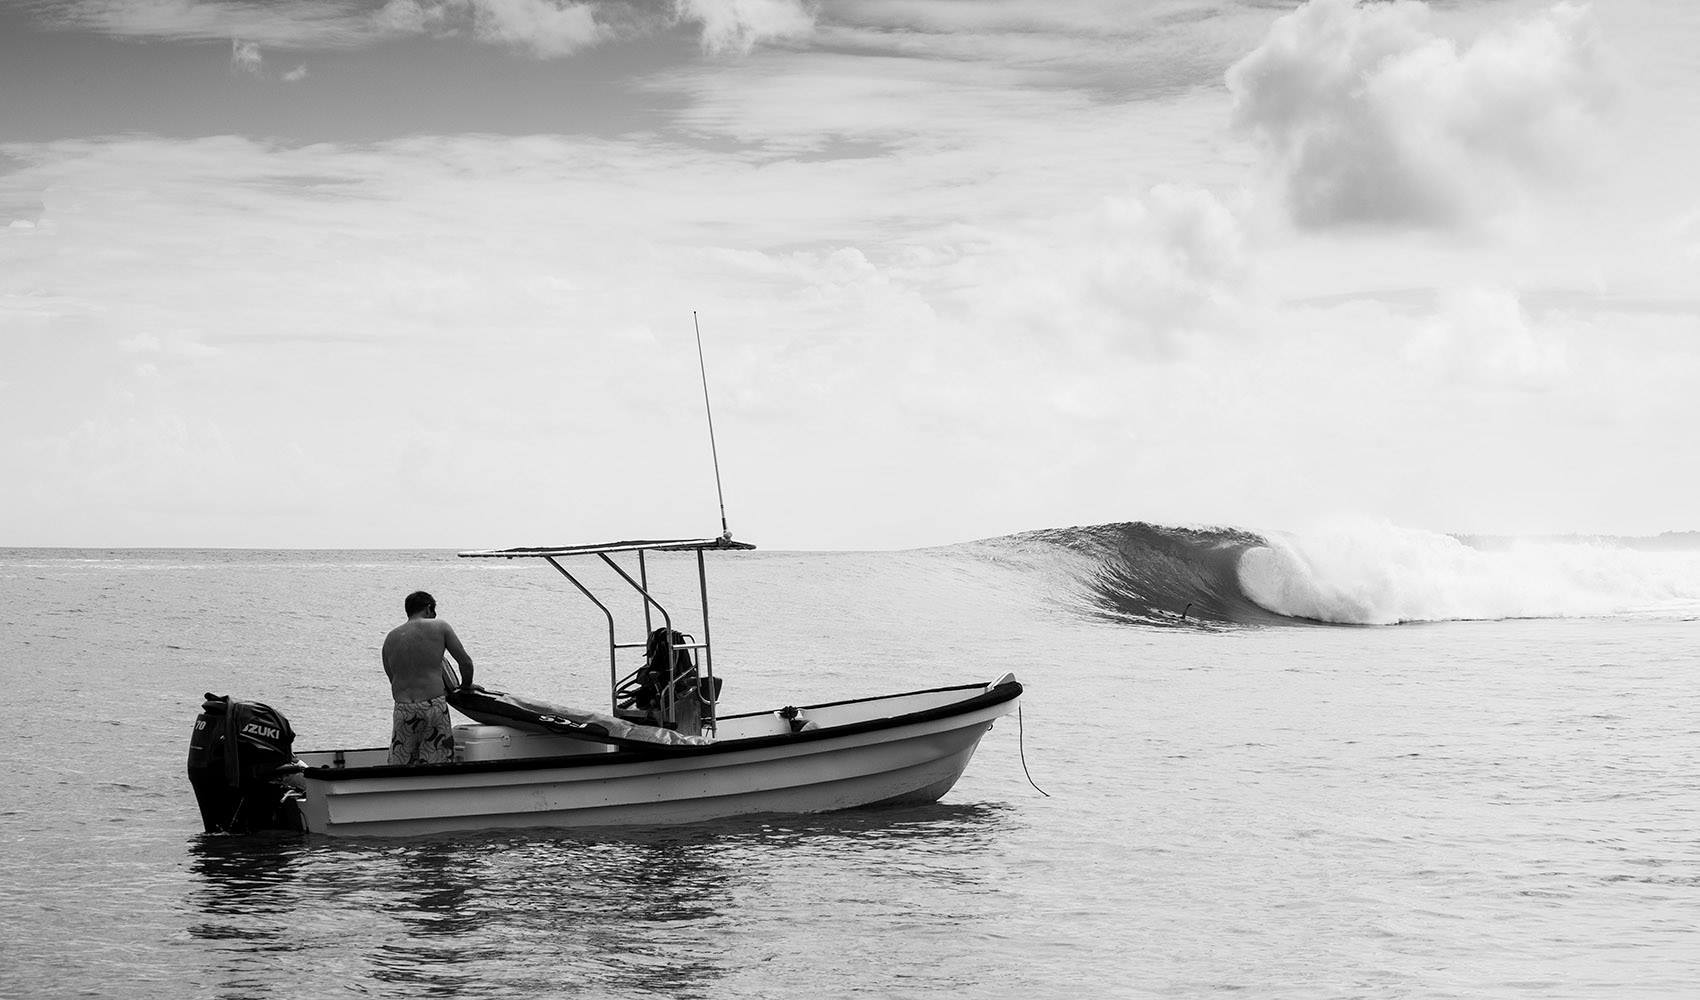 Telo_Island_Lodge_Surf_Indonesia Empty Wave Boat.jpg